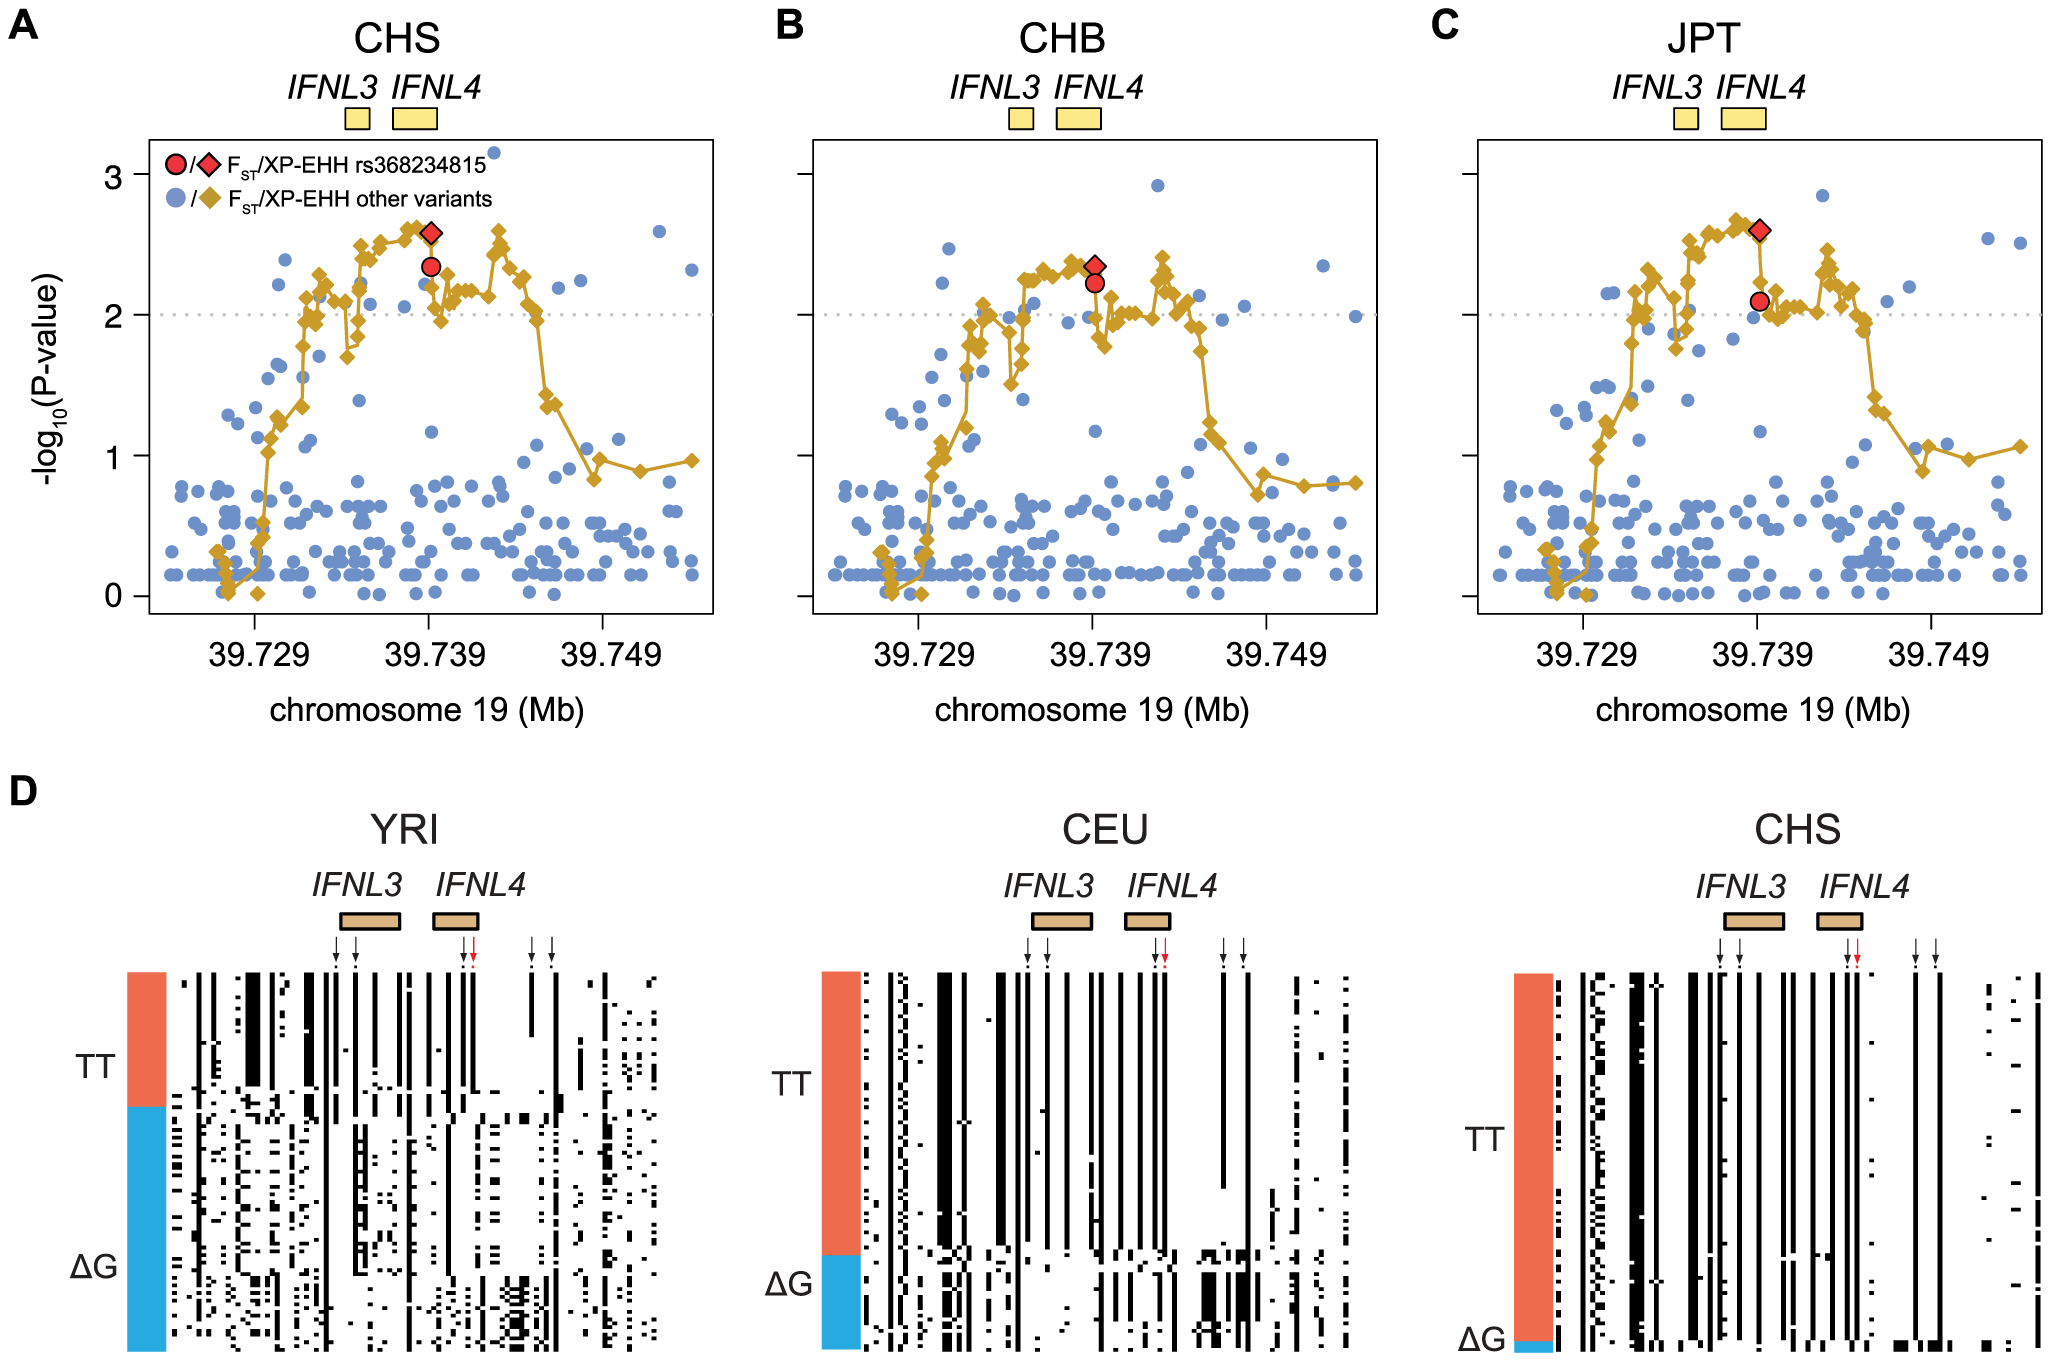 Empirical P-values of the F<sub>ST</sub> and XP-EHH analysis (depicted as dots or diamonds, respectively) in the 30 Kb genomic locus around <i>IFNL4</i> (chr19:39724153–39754153) for (A) CHS, (B) CHB, and (C) JPT using YRI as background.